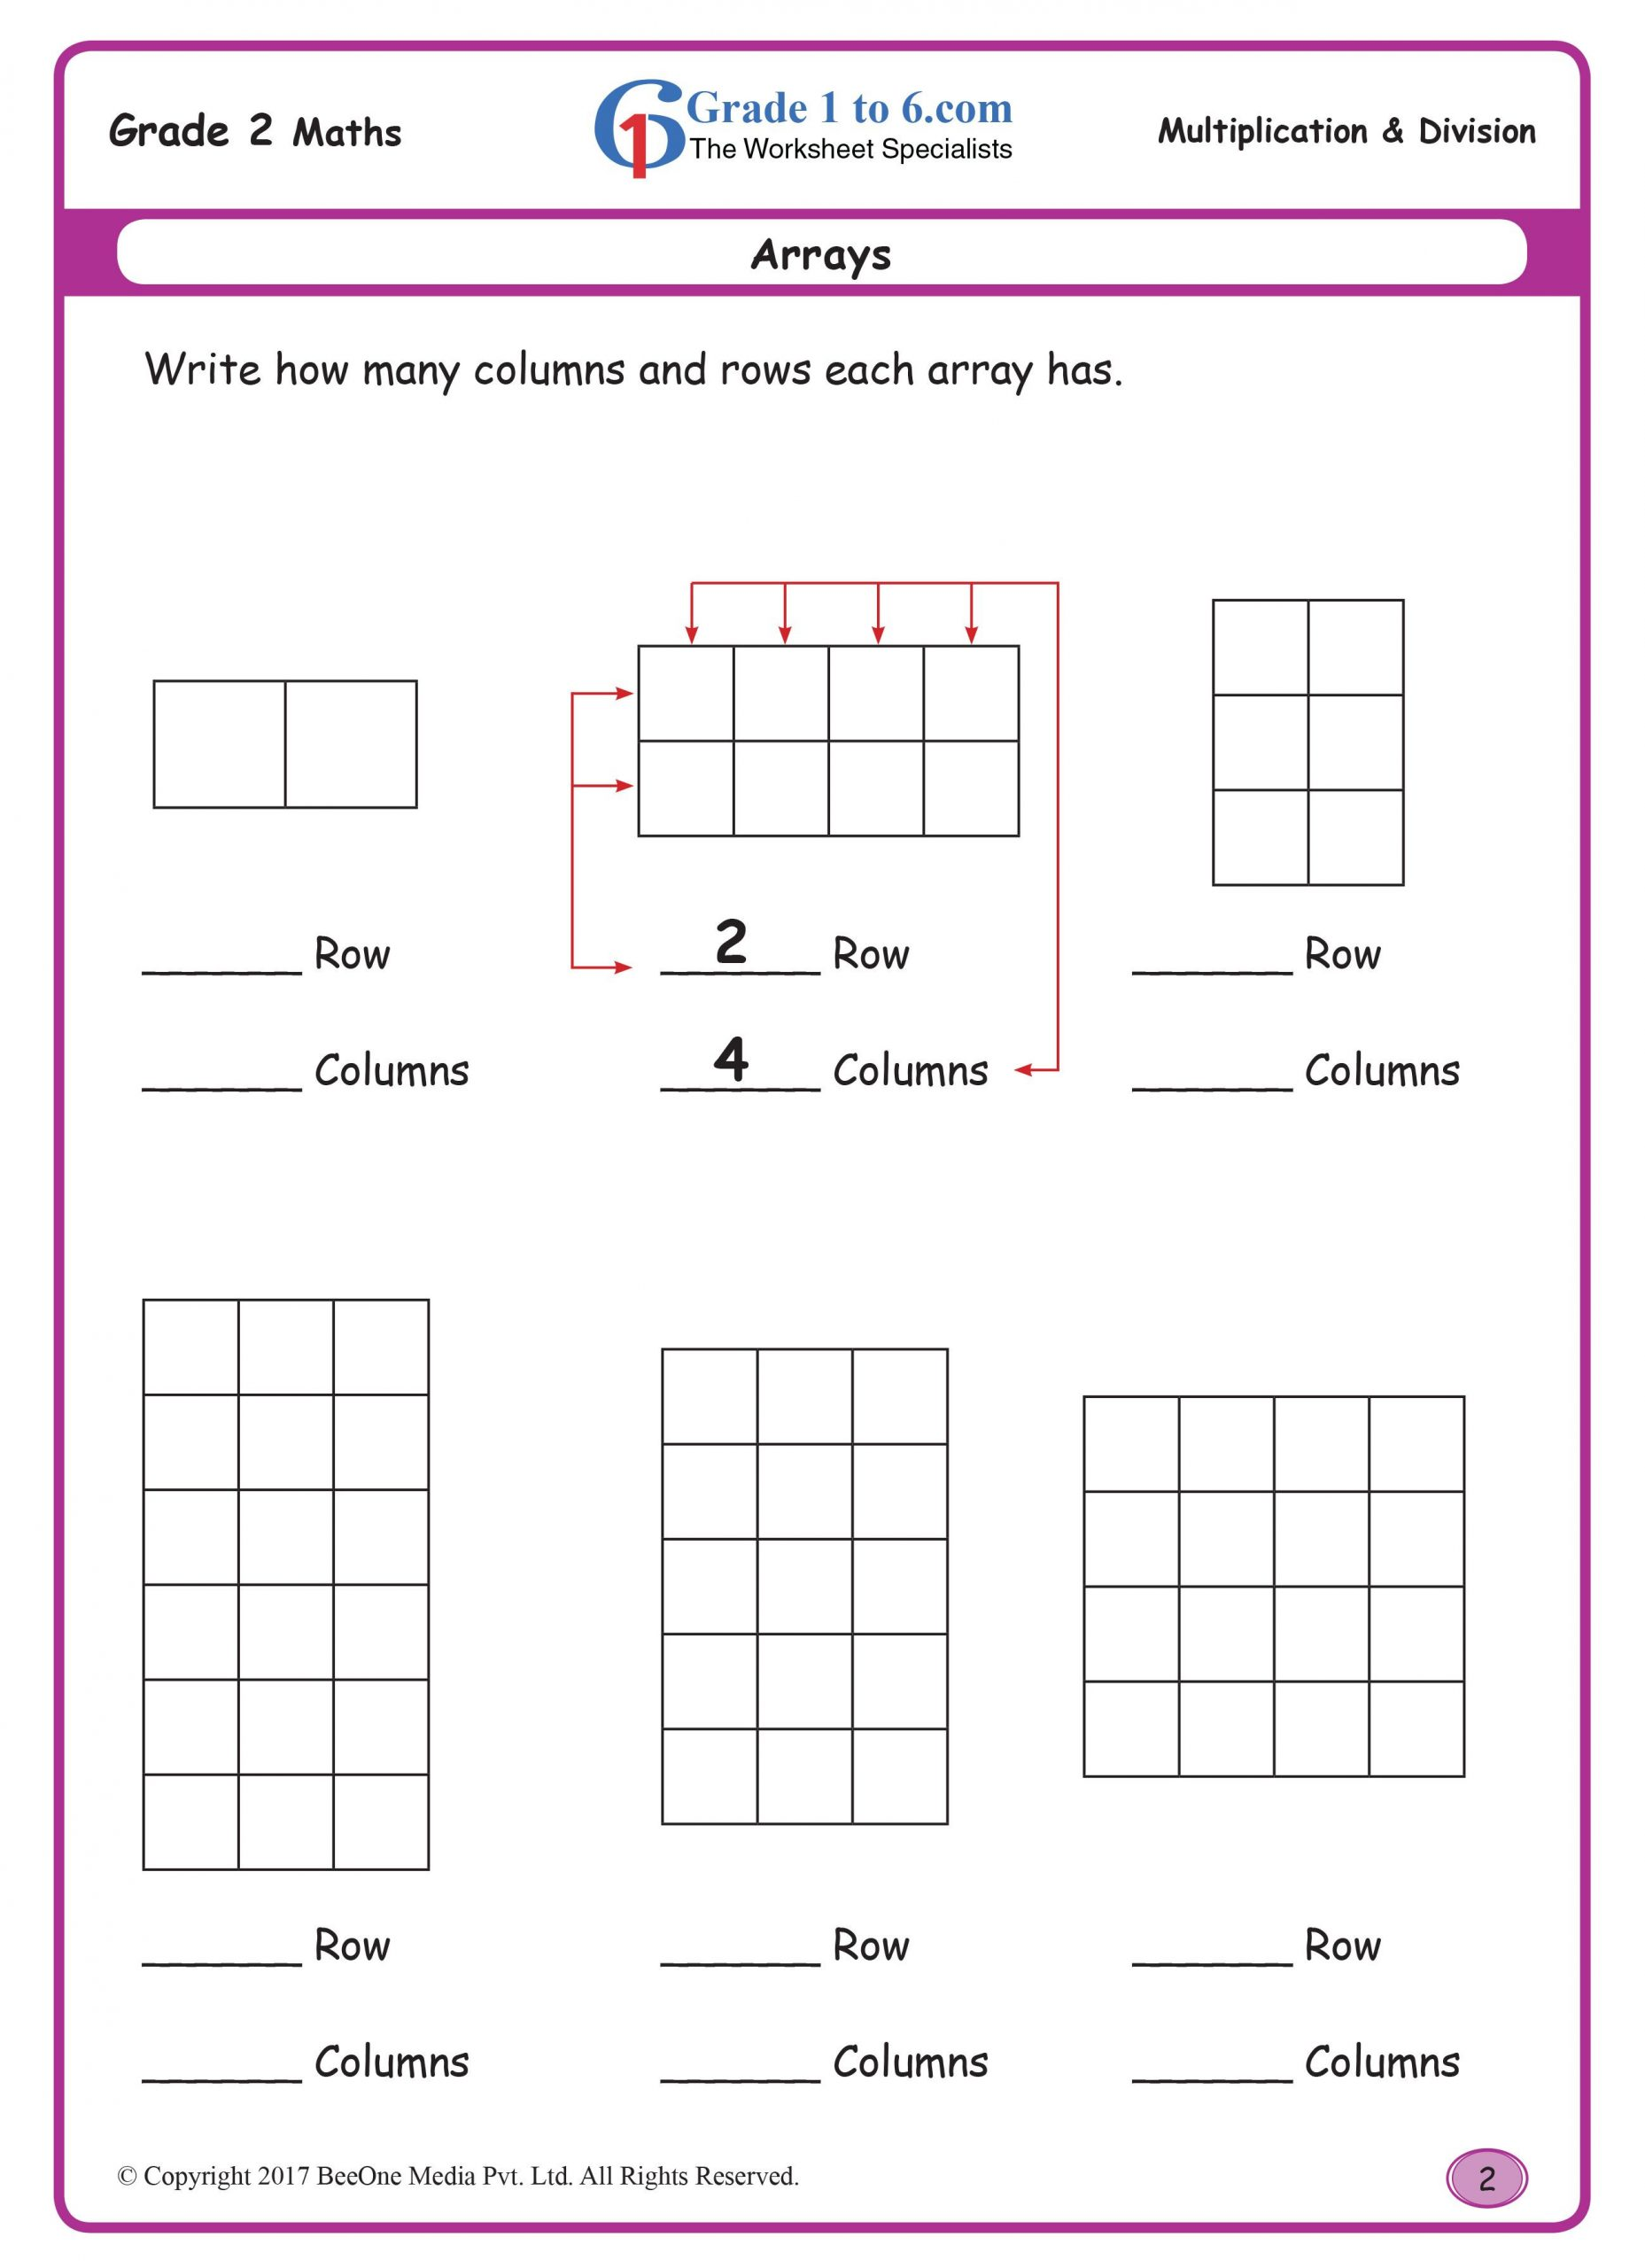 Array Math Worksheets Arrays Buy the Entire E Workbook Of 300 Plus Pages for Just